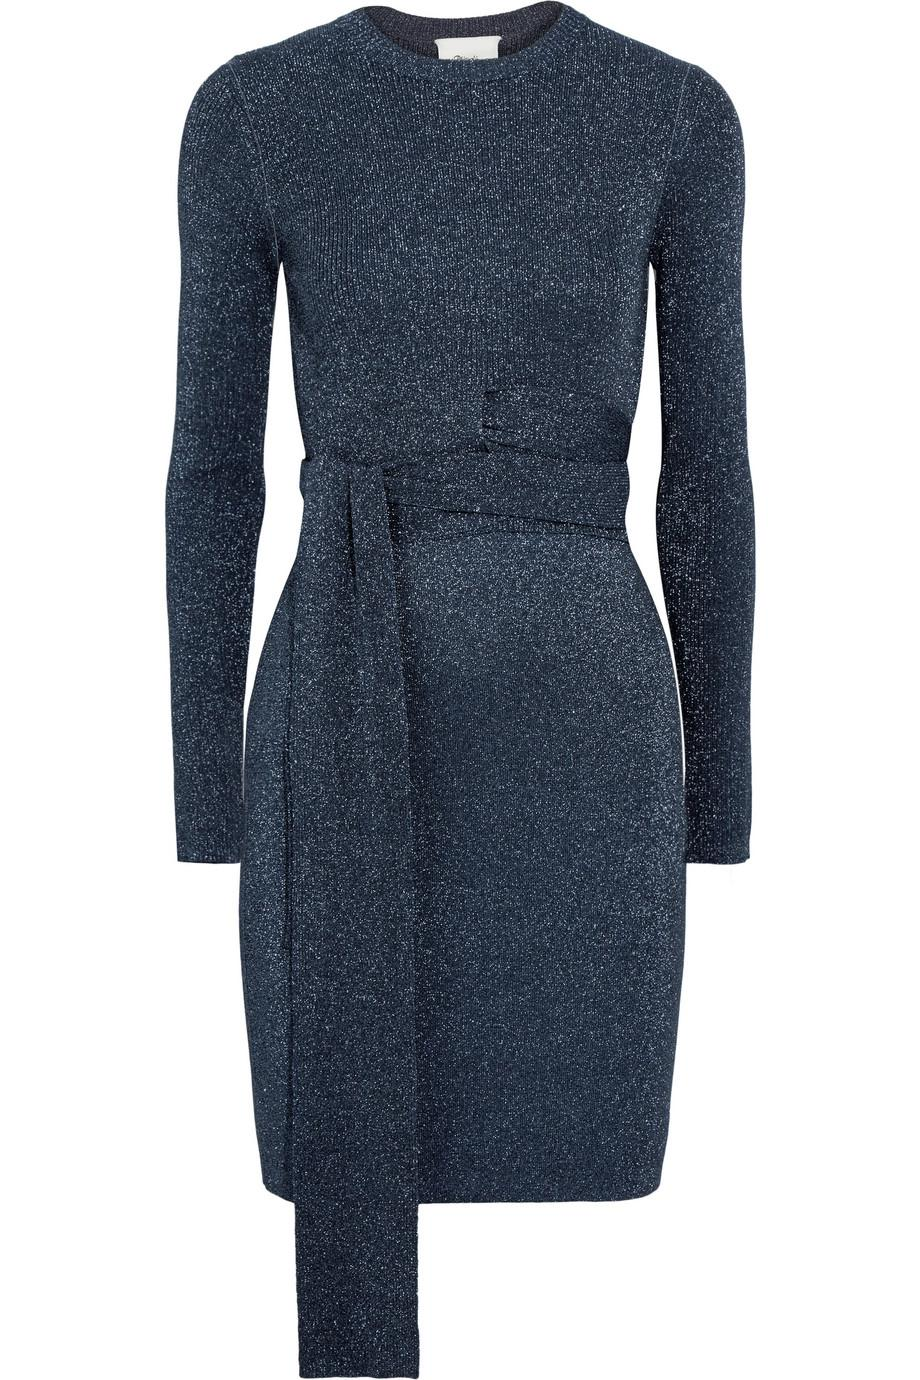 Twisted Metallic Ribbed-knit Dress - Navy 3.1 Phillip Lim